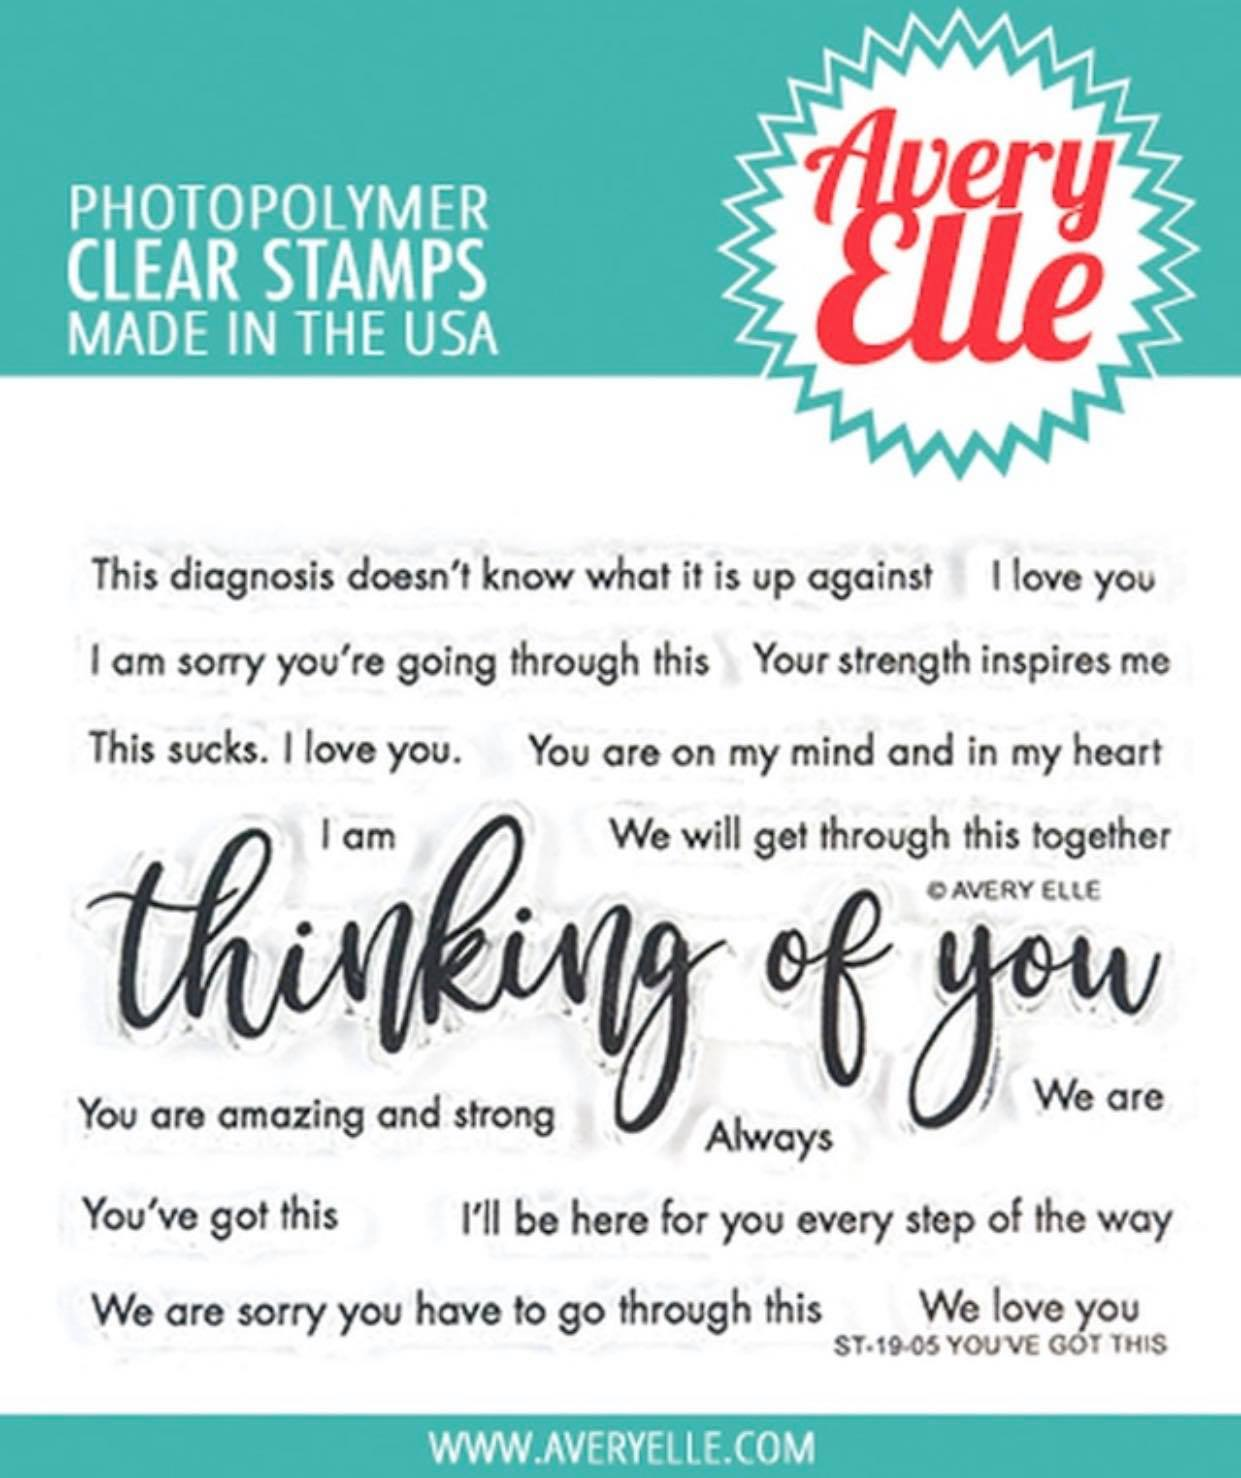 Avery Elle - You've Got This Stamp Set